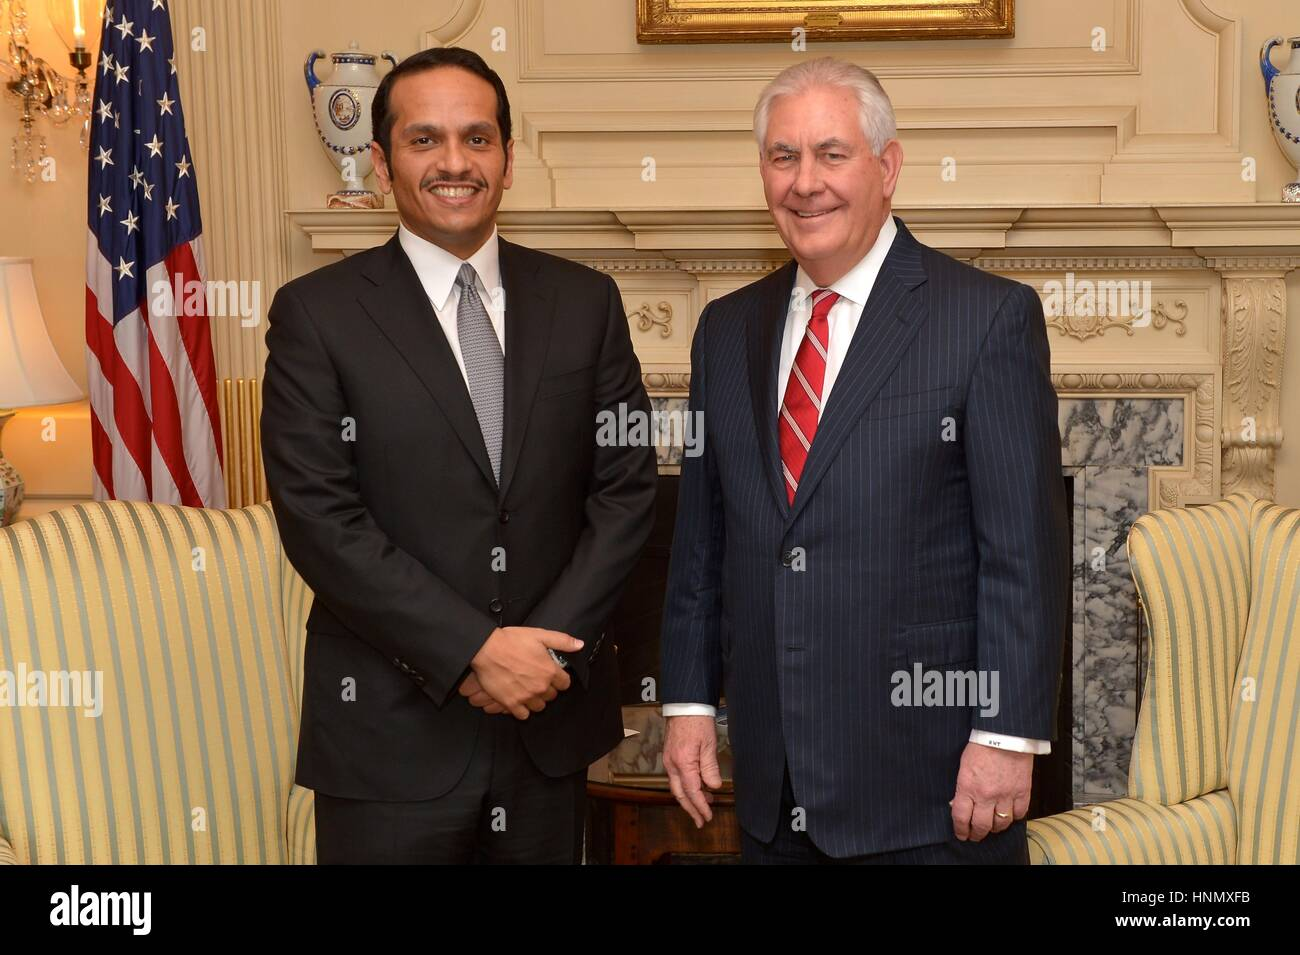 U.S. Secretary of State Rex Tillerson stands for a photo with Qatari Foreign Minister Sheikh Mohammed bin Abdulrahman Stock Photo